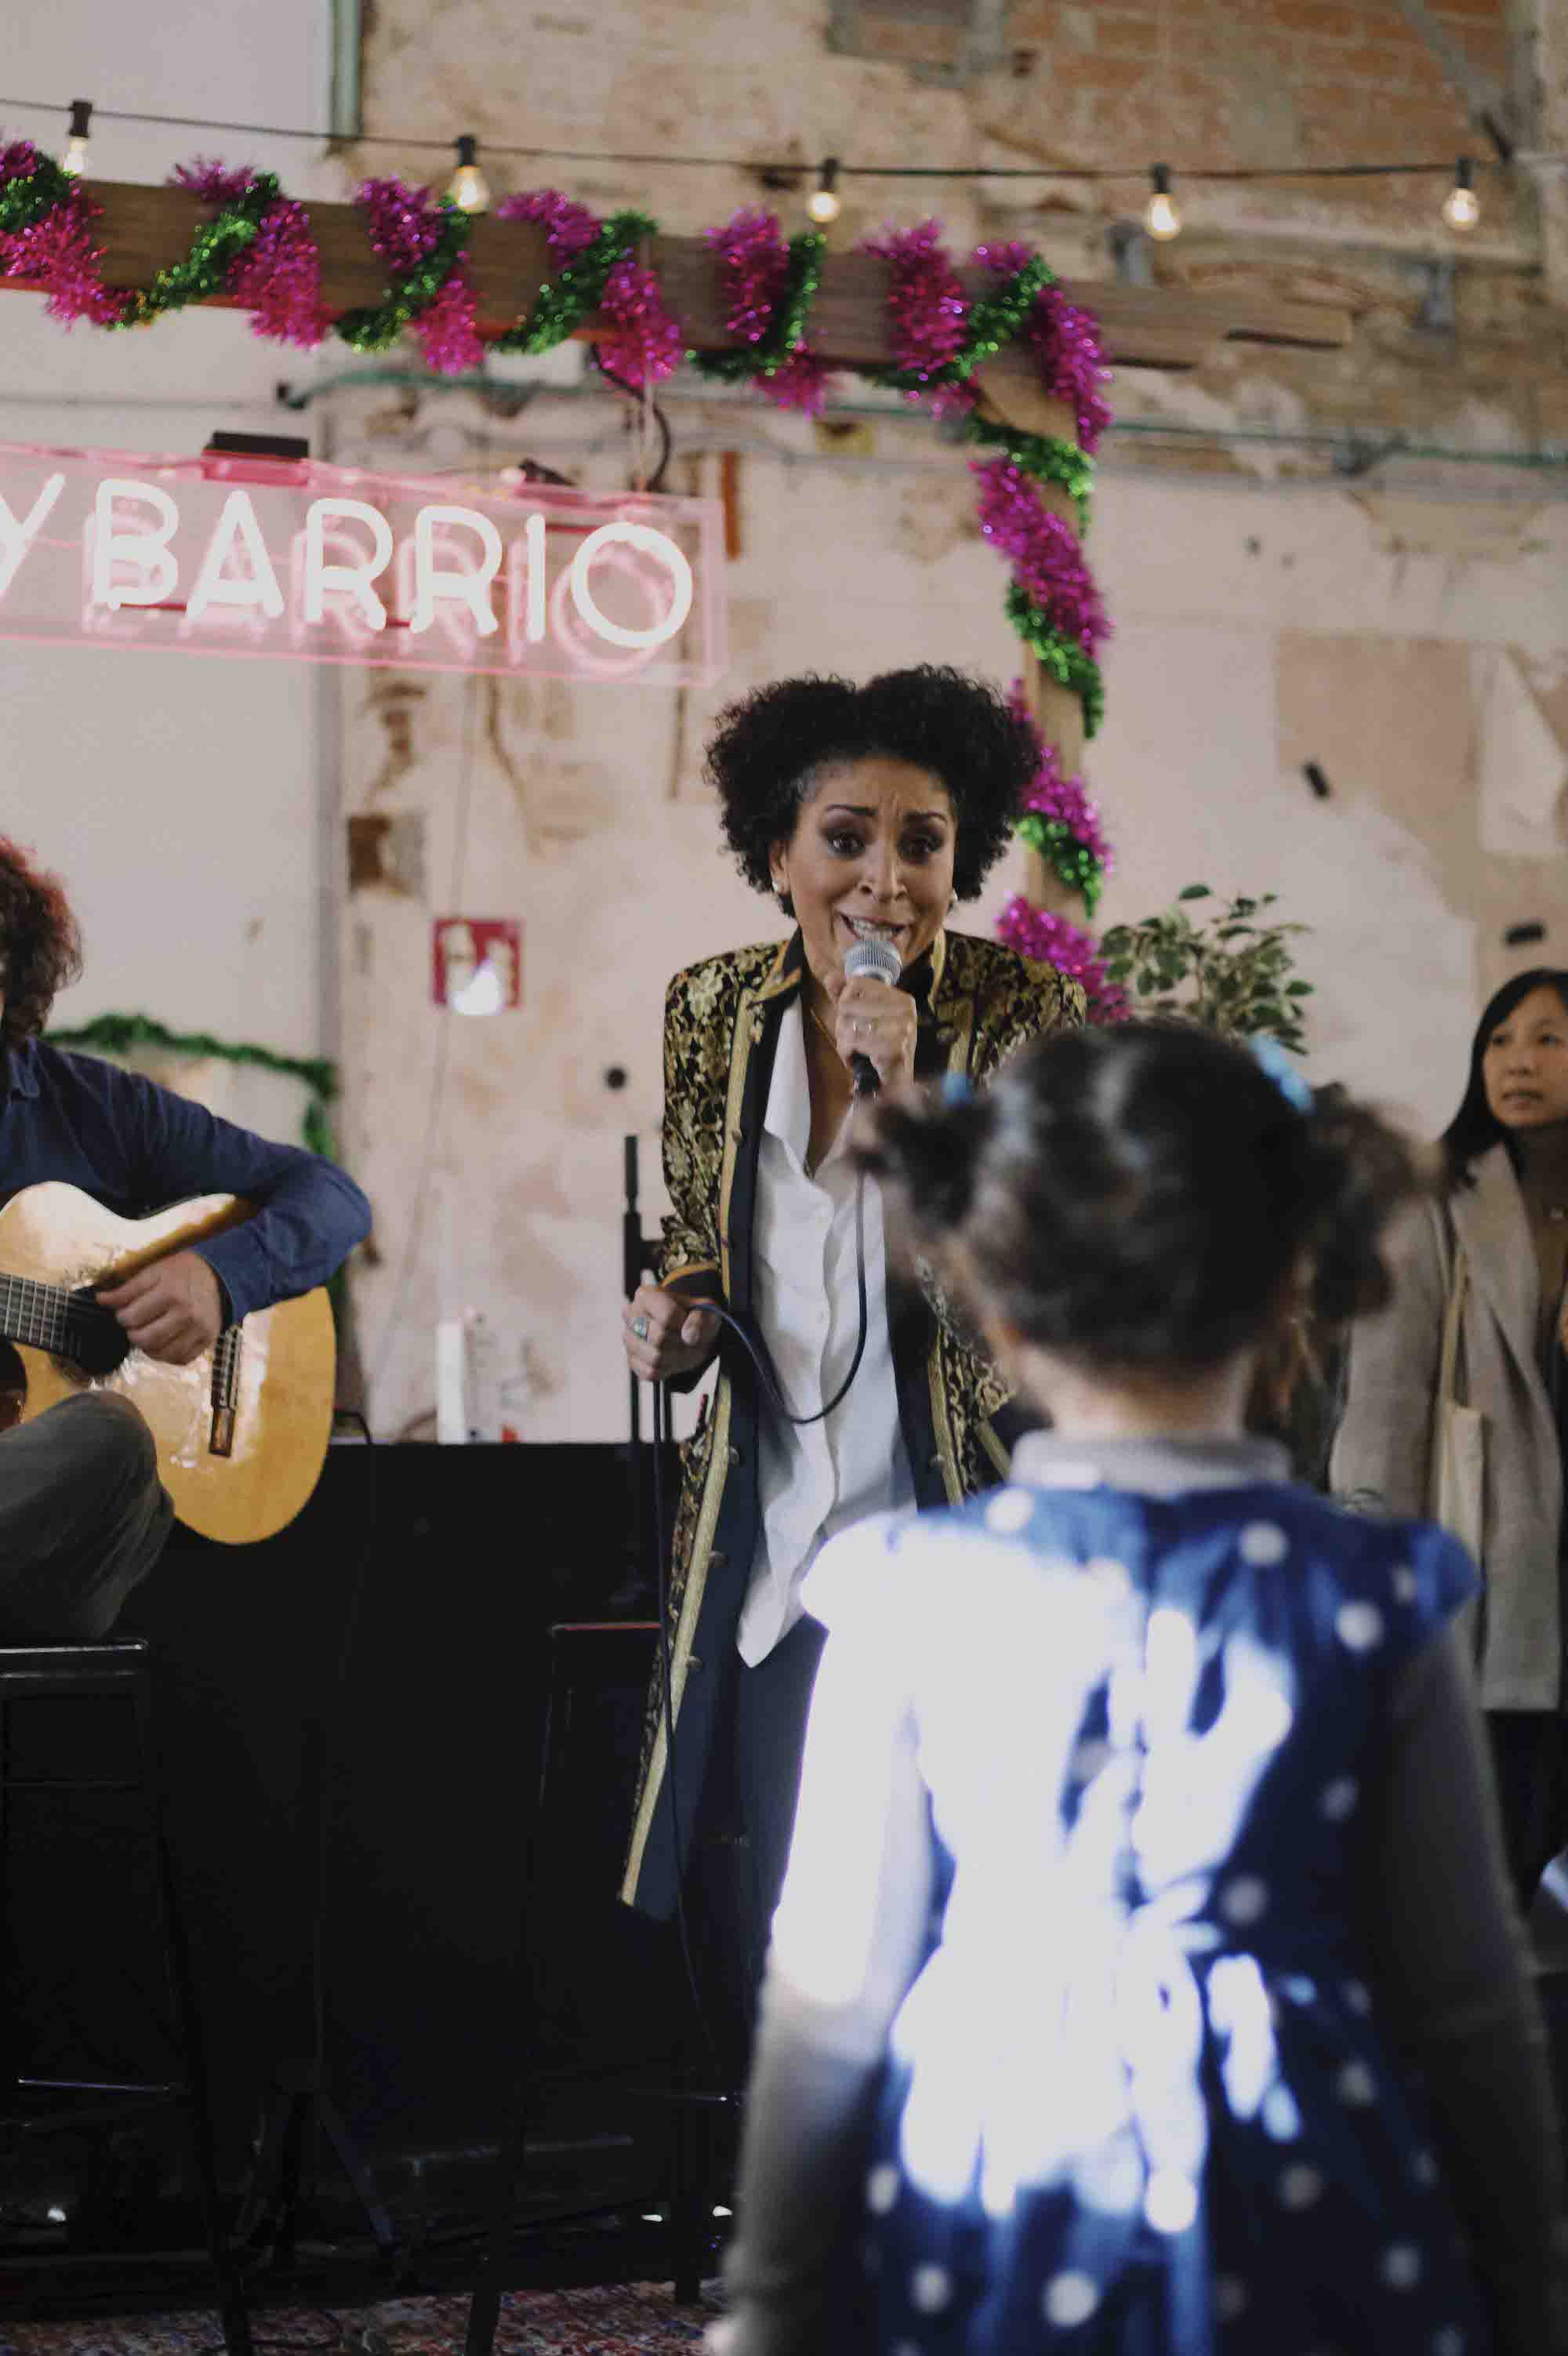 MYBARRIO Pop Up Hivern Sant Pau - Musica en vivo - Maracujá Project